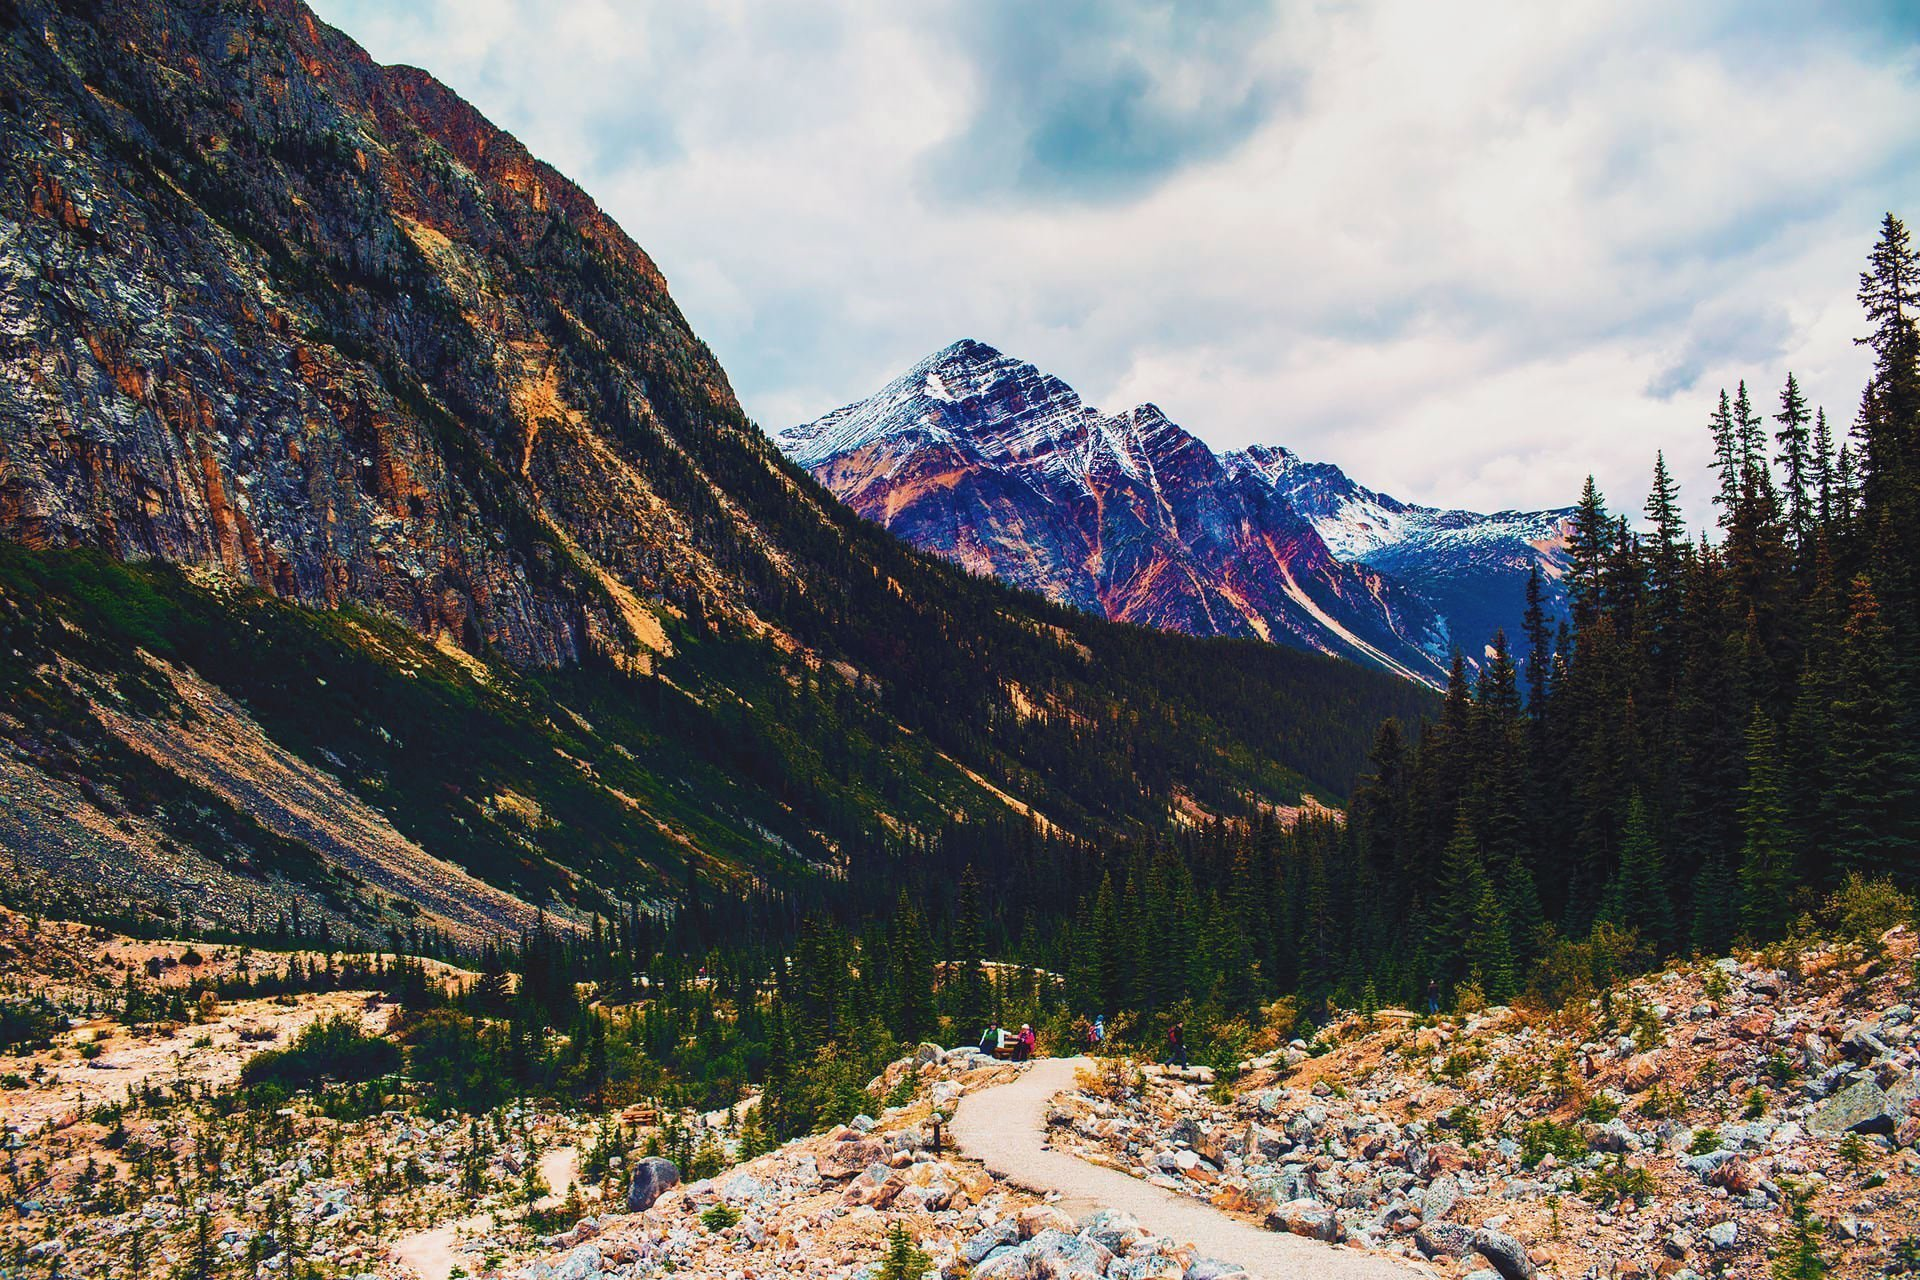 View of the rocky and glacier capped mountains at Mount Edith Cavell Hike in Alberta Canada